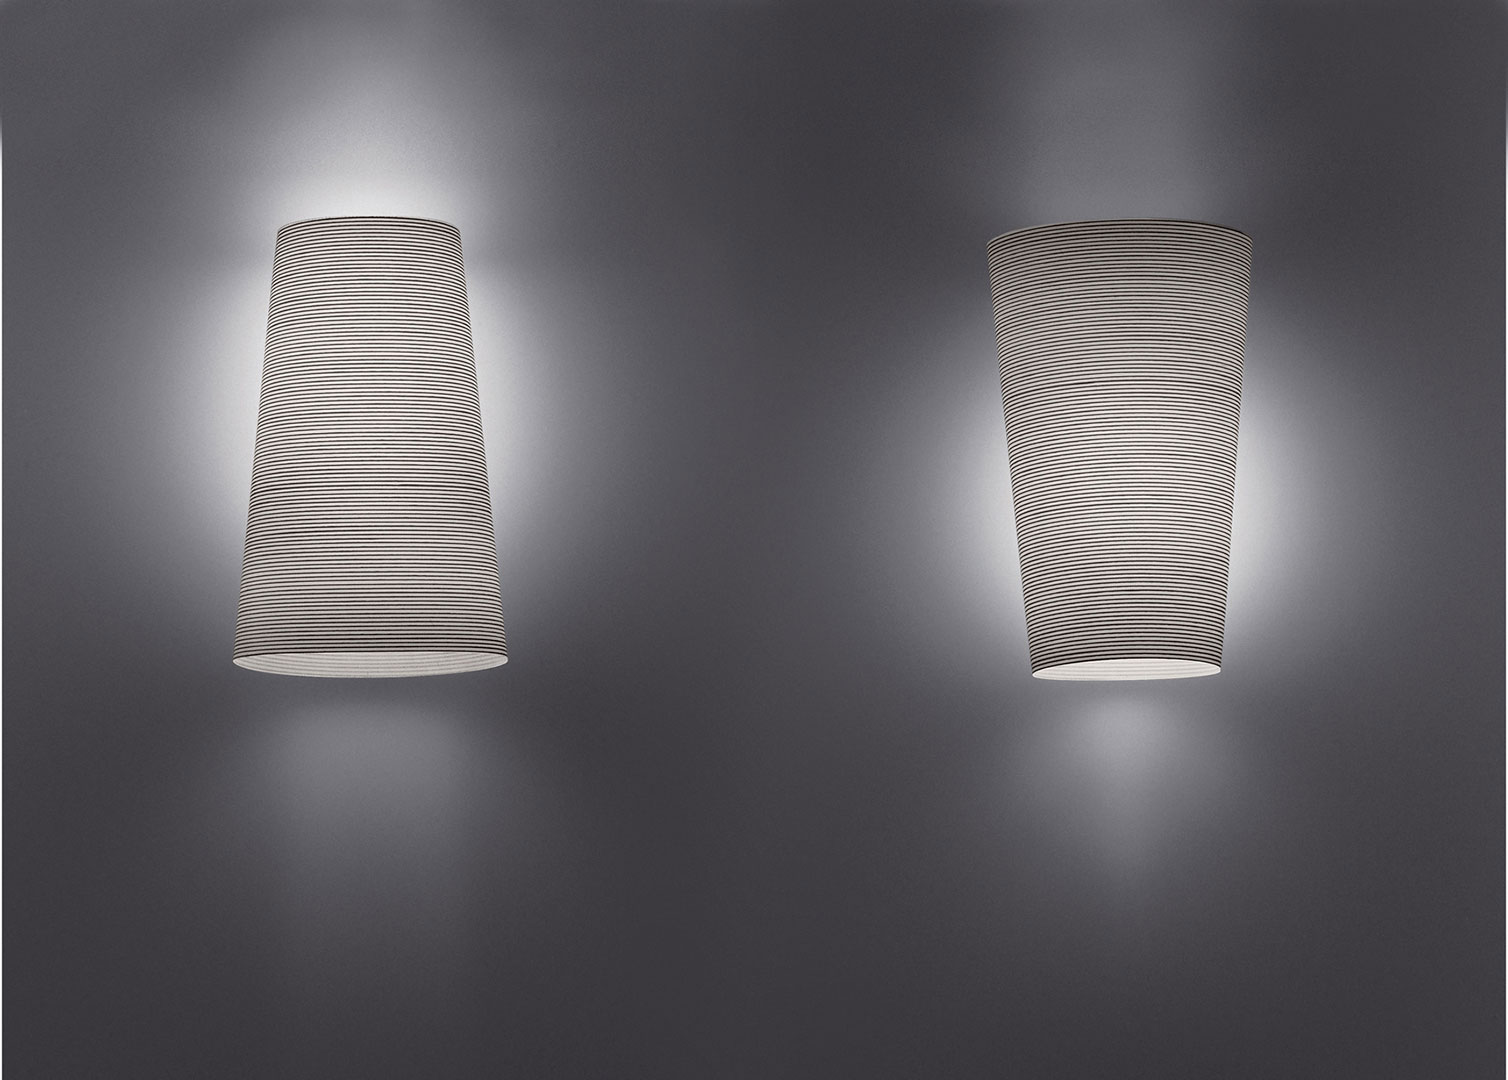 These Modern Wall Lamps Will Illuminate Your Space in Style wall lamps These Modern Wall Lamps Will Illuminate Your Space in Style 15 1